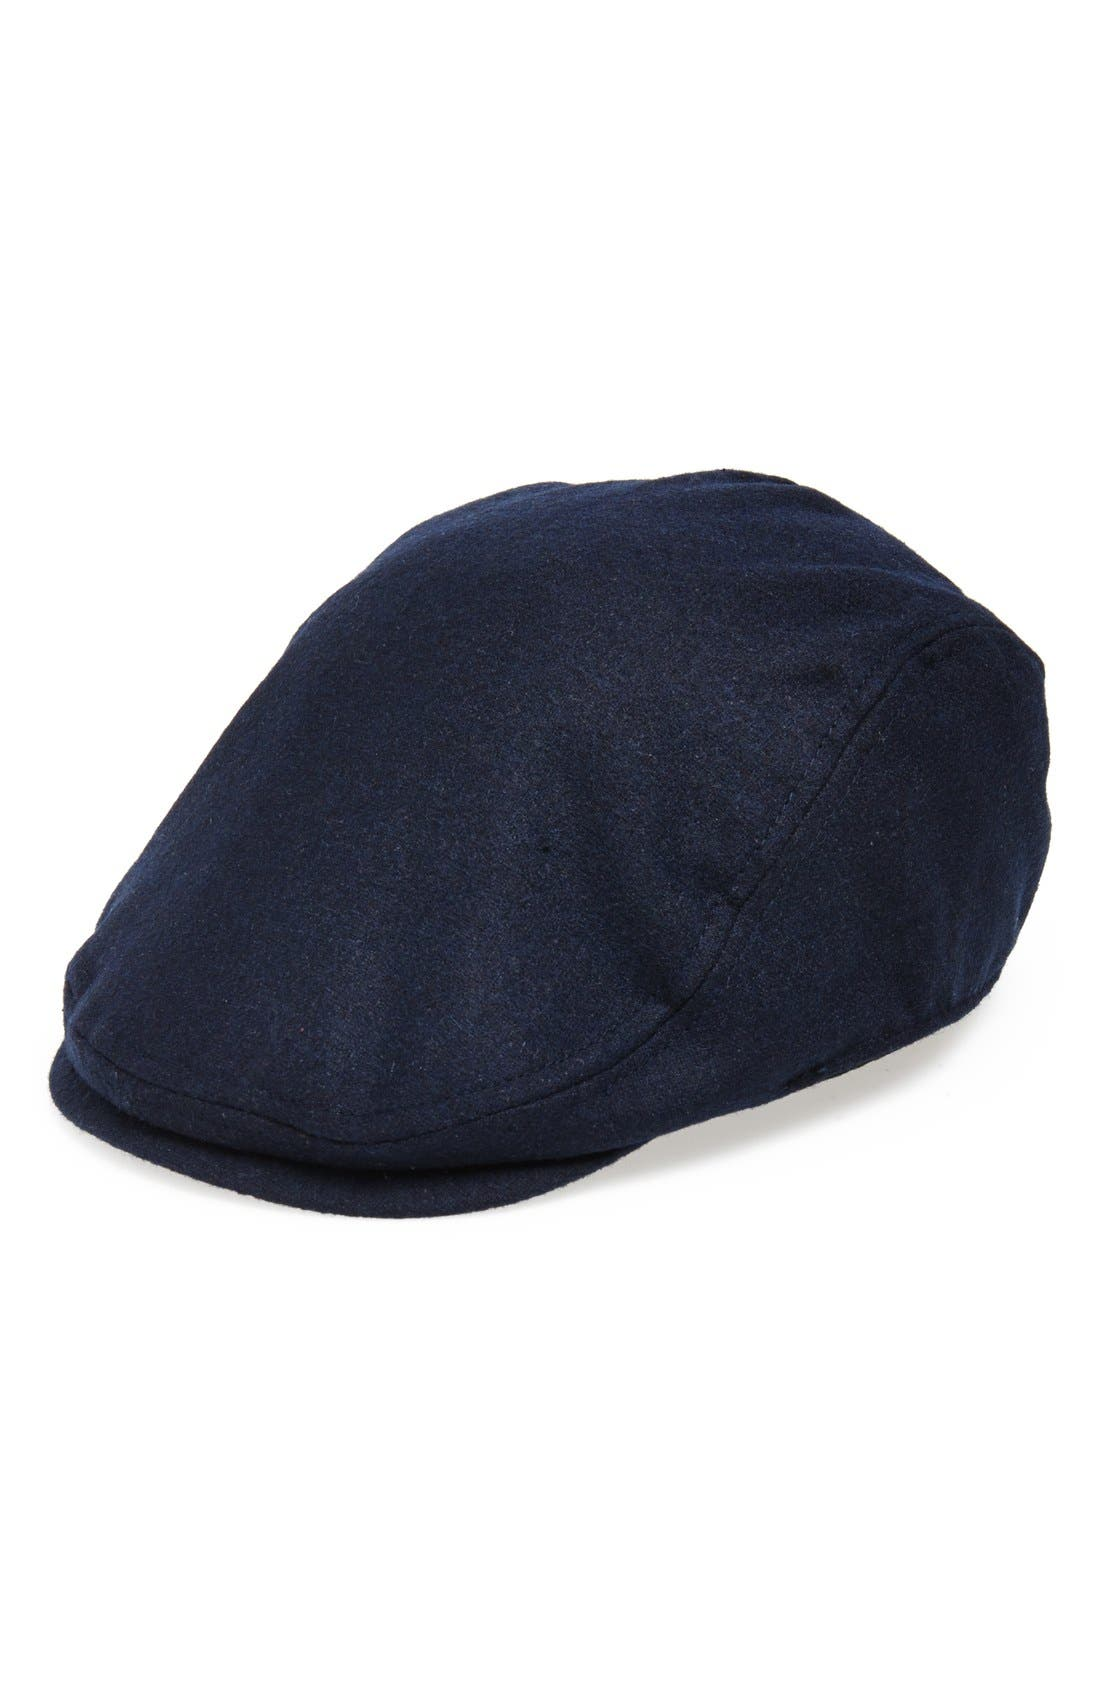 GOORIN BROTHERS Glory Hats by Goorin Mikey Driving Cap